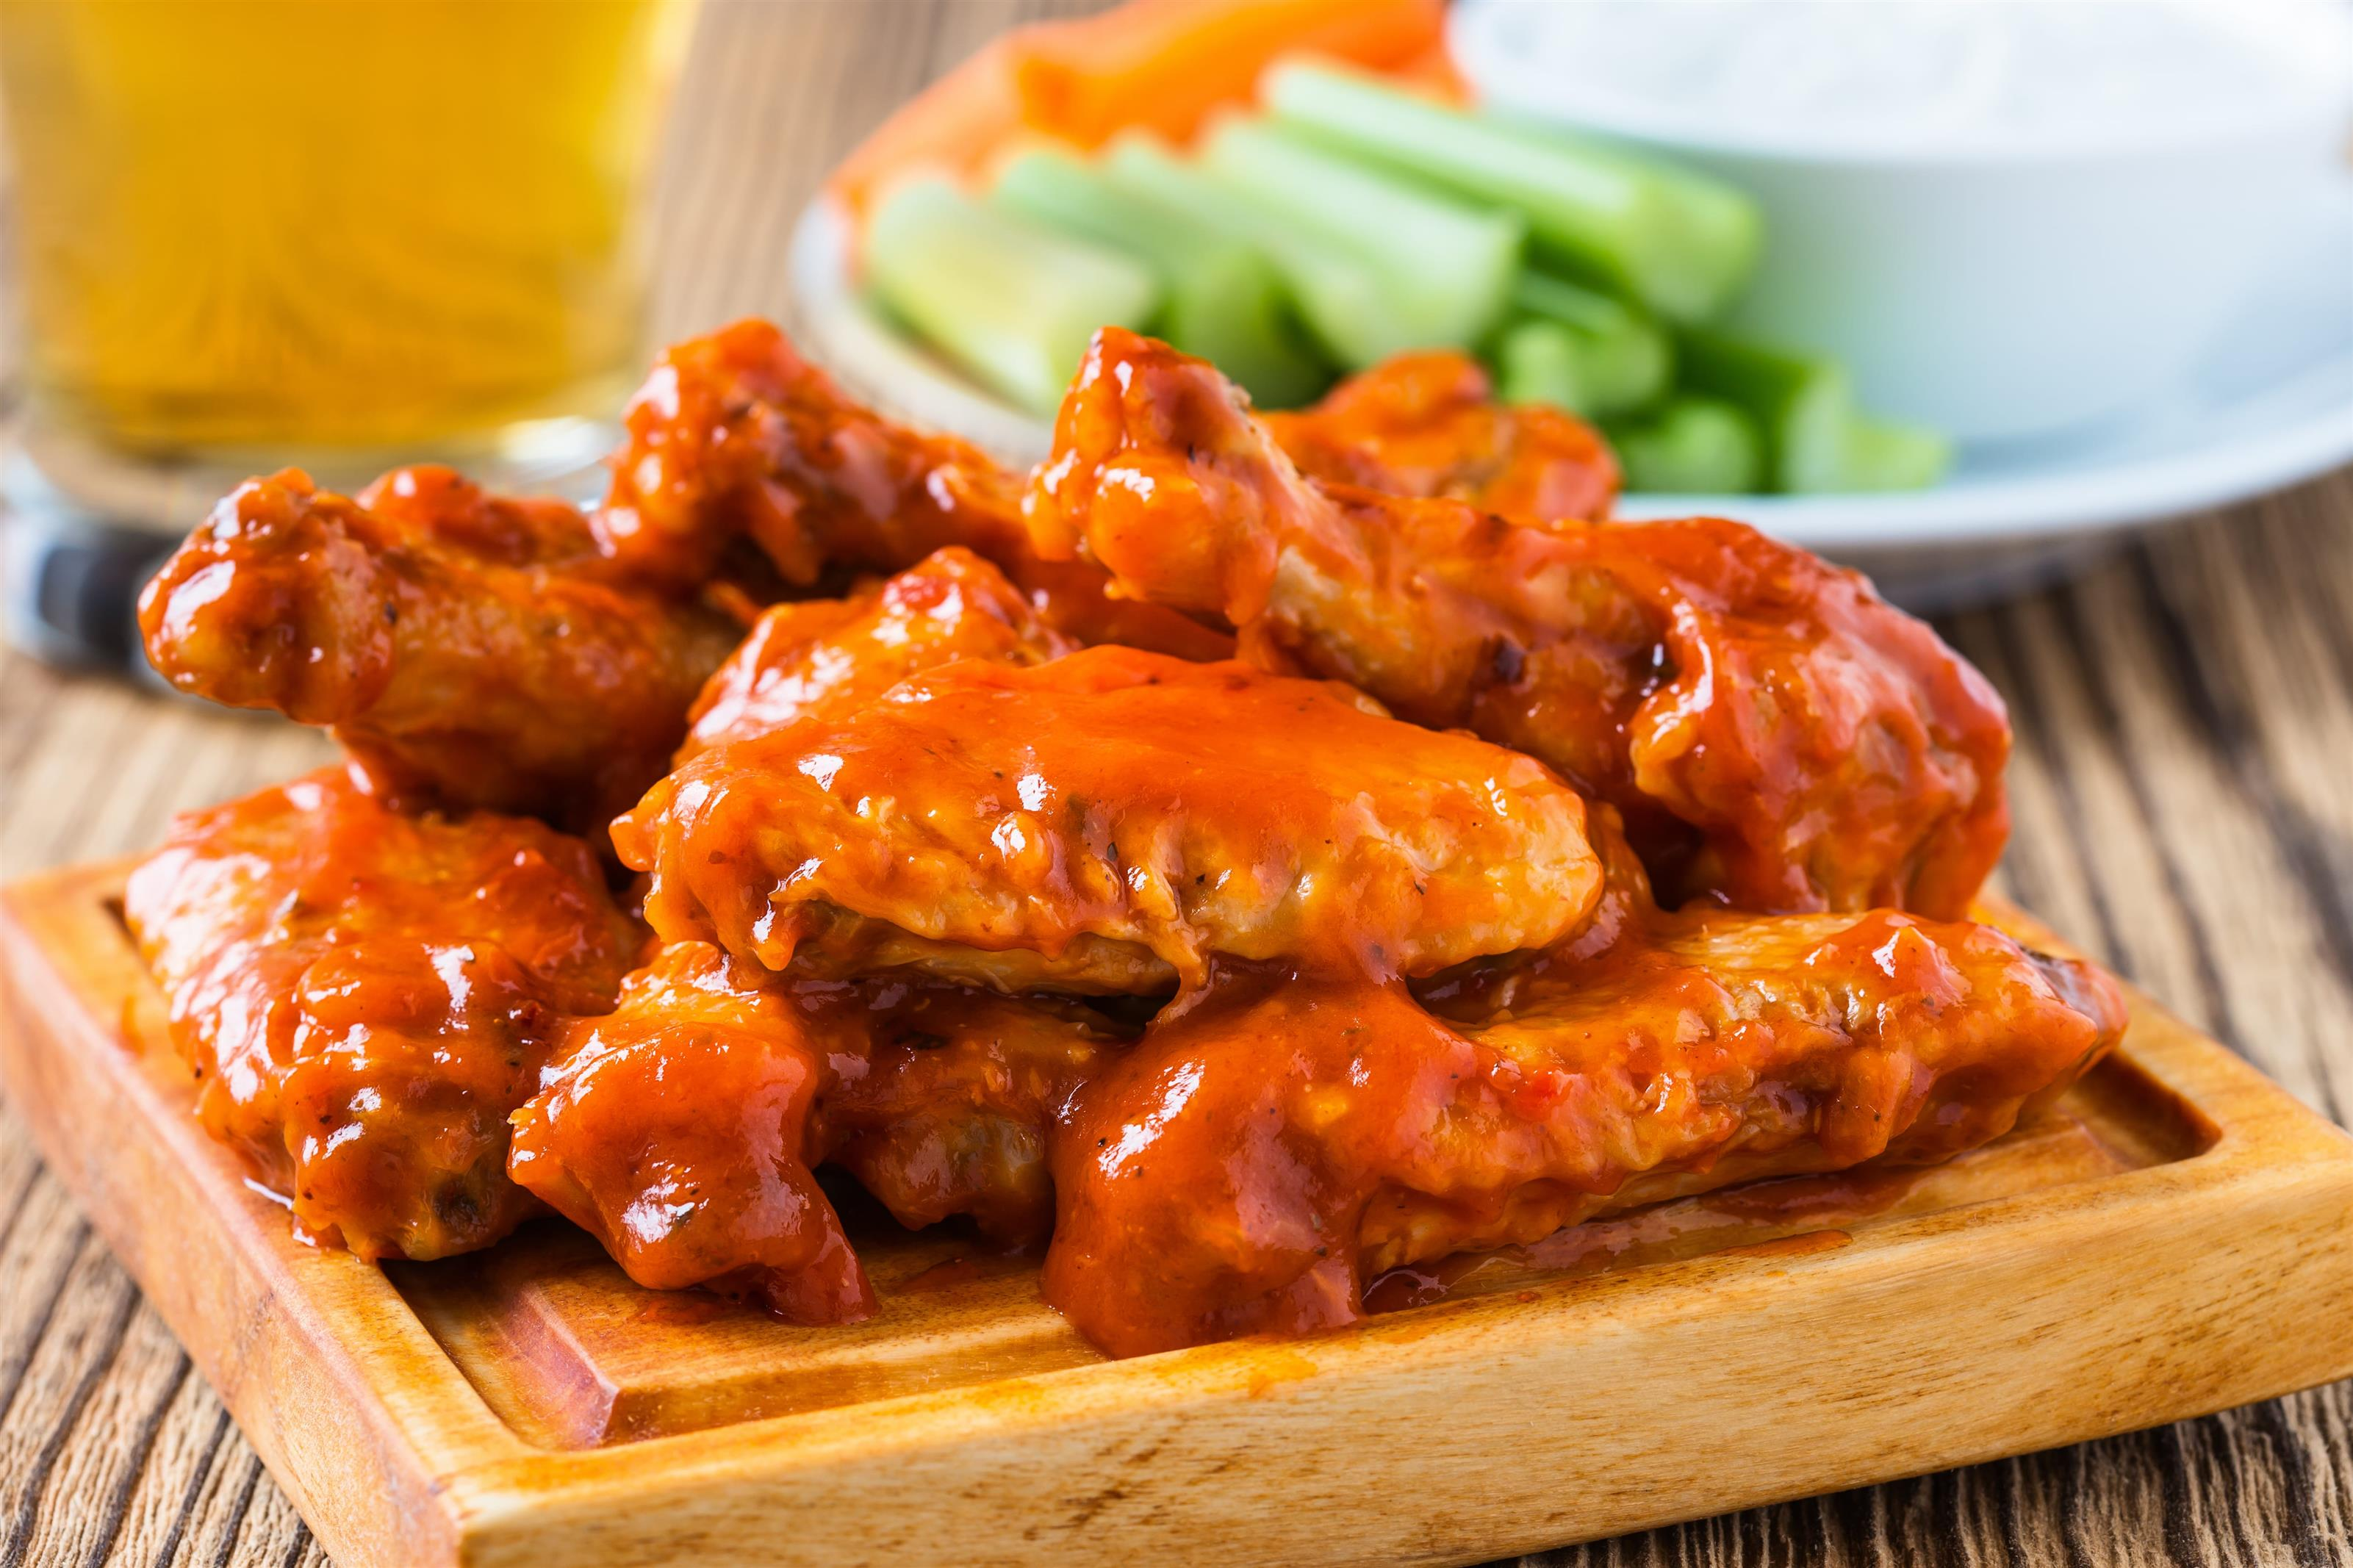 chicken wings tossed in buffalo sauce